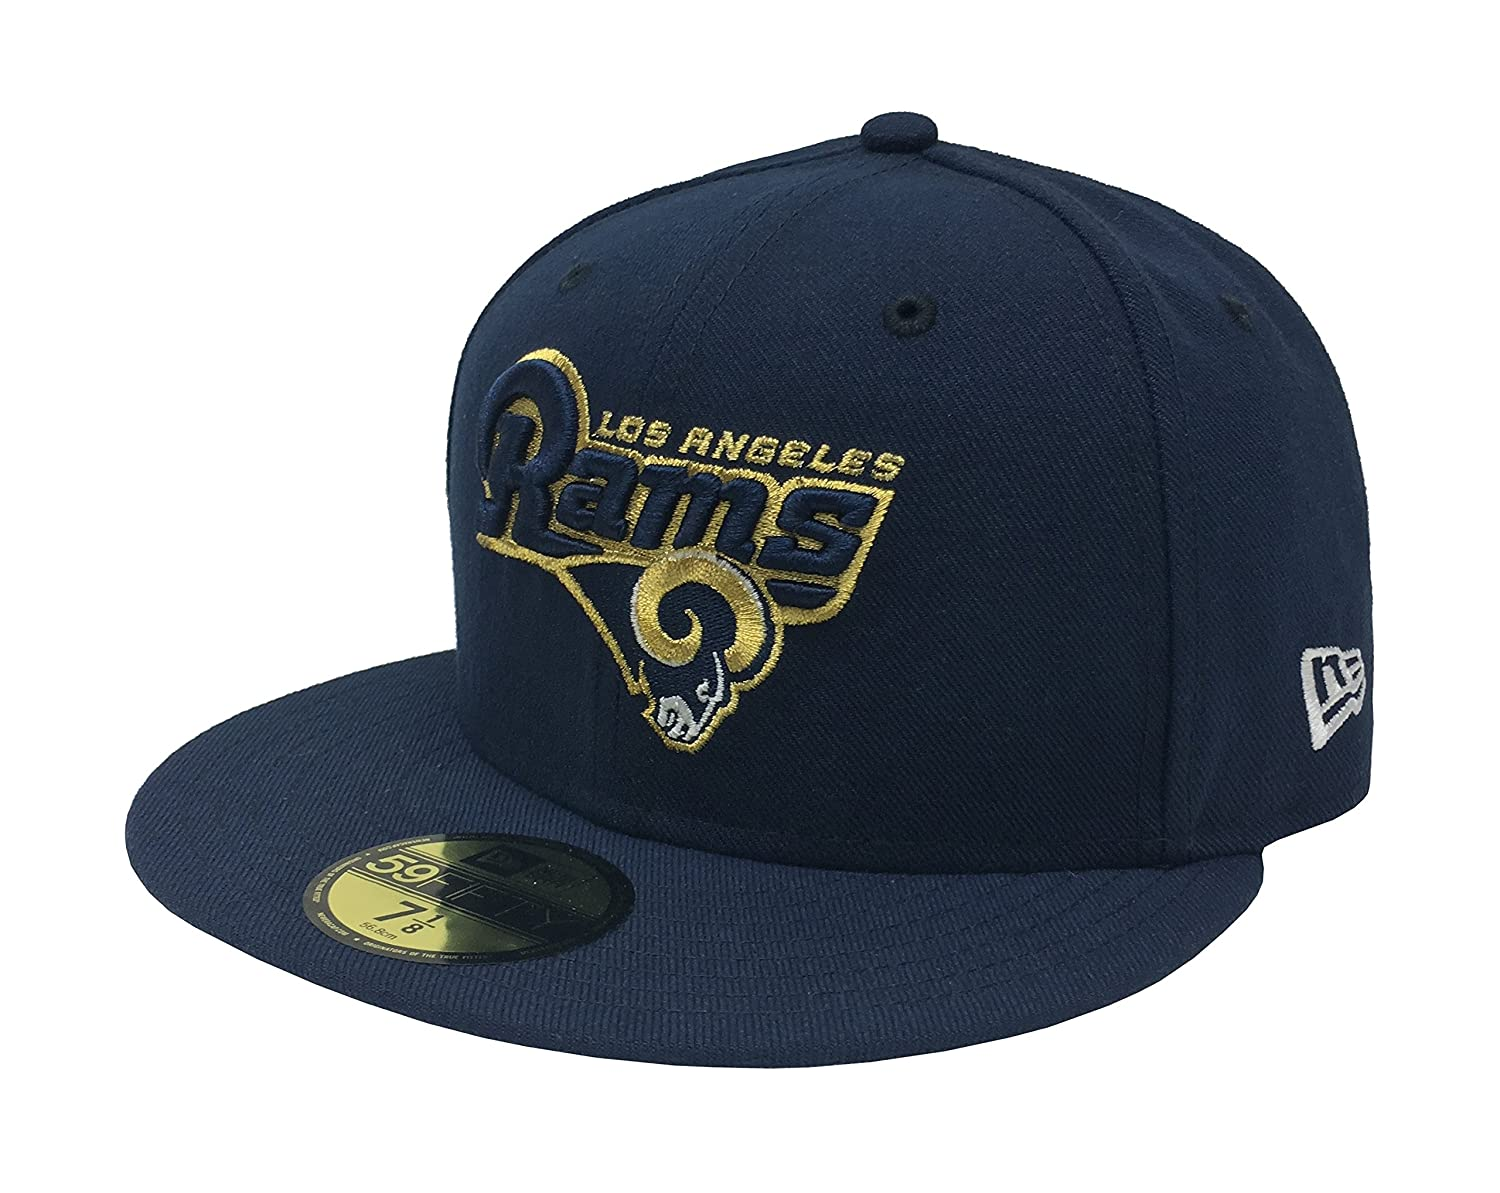 Amazon.com   New Era 59Fifty Cap NFL Los Angeles Rams Fitted Hat - Navy  Blue Gold (6 7 8)   Clothing 96a57b0a704